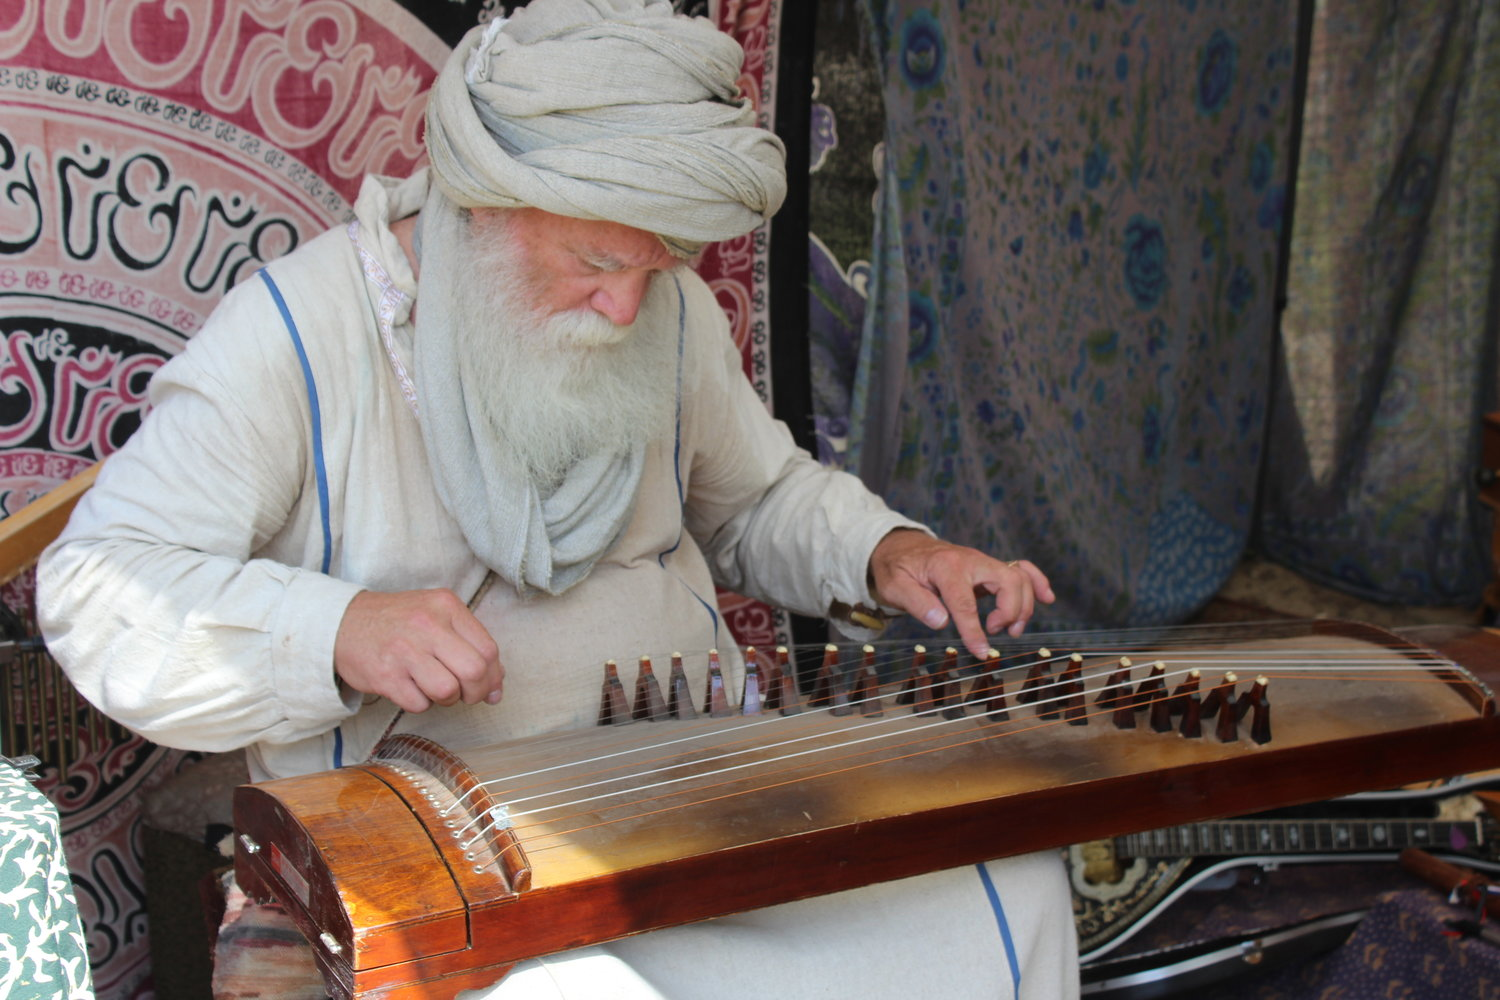 Mystic and musician Mustafa Ali performs on one of the dozens of instruments that he has gathered from around the world.